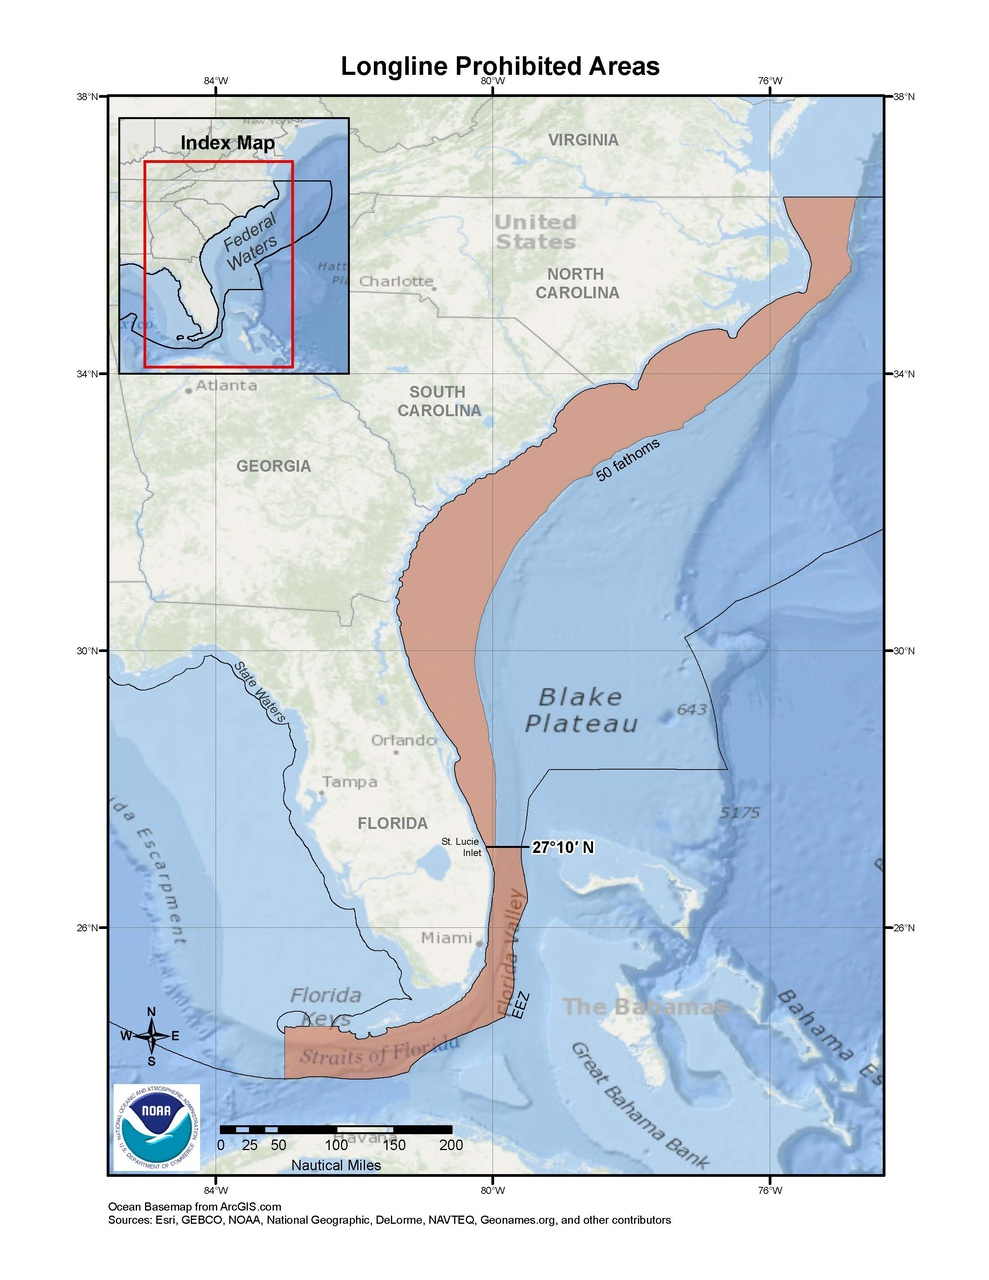 This is a map of the longline prohibited areas for the snapper-grouper fishery in the South Atlantic Region.